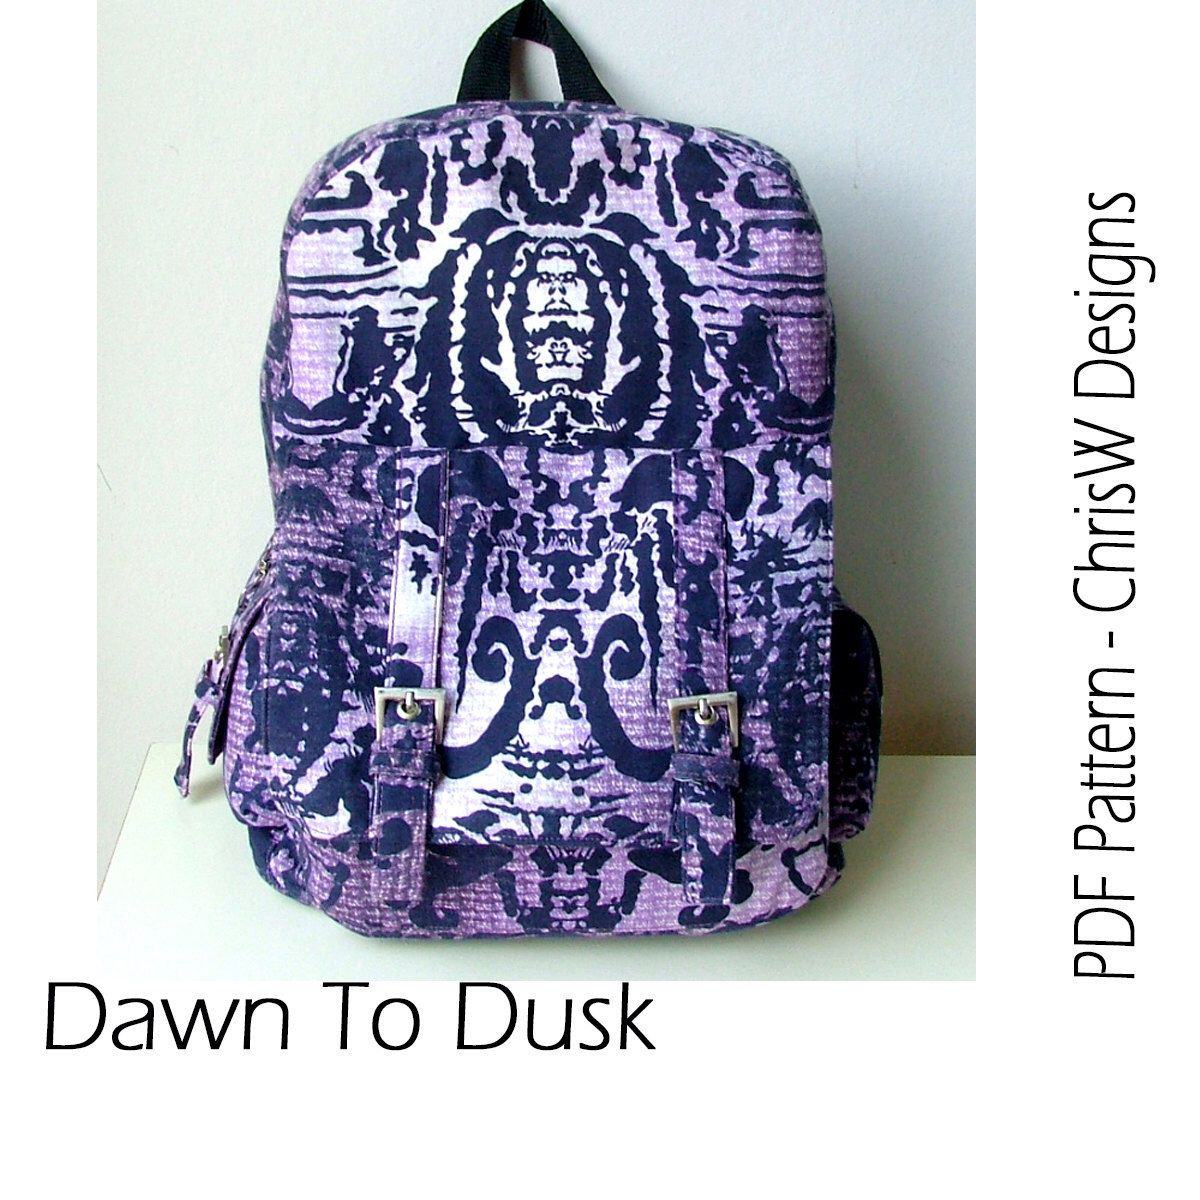 Backpack pdf bag sewing pattern dawn to dusk designer teen or backpack pdf bag sewing pattern dawn to dusk designer teen or adult jeuxipadfo Choice Image